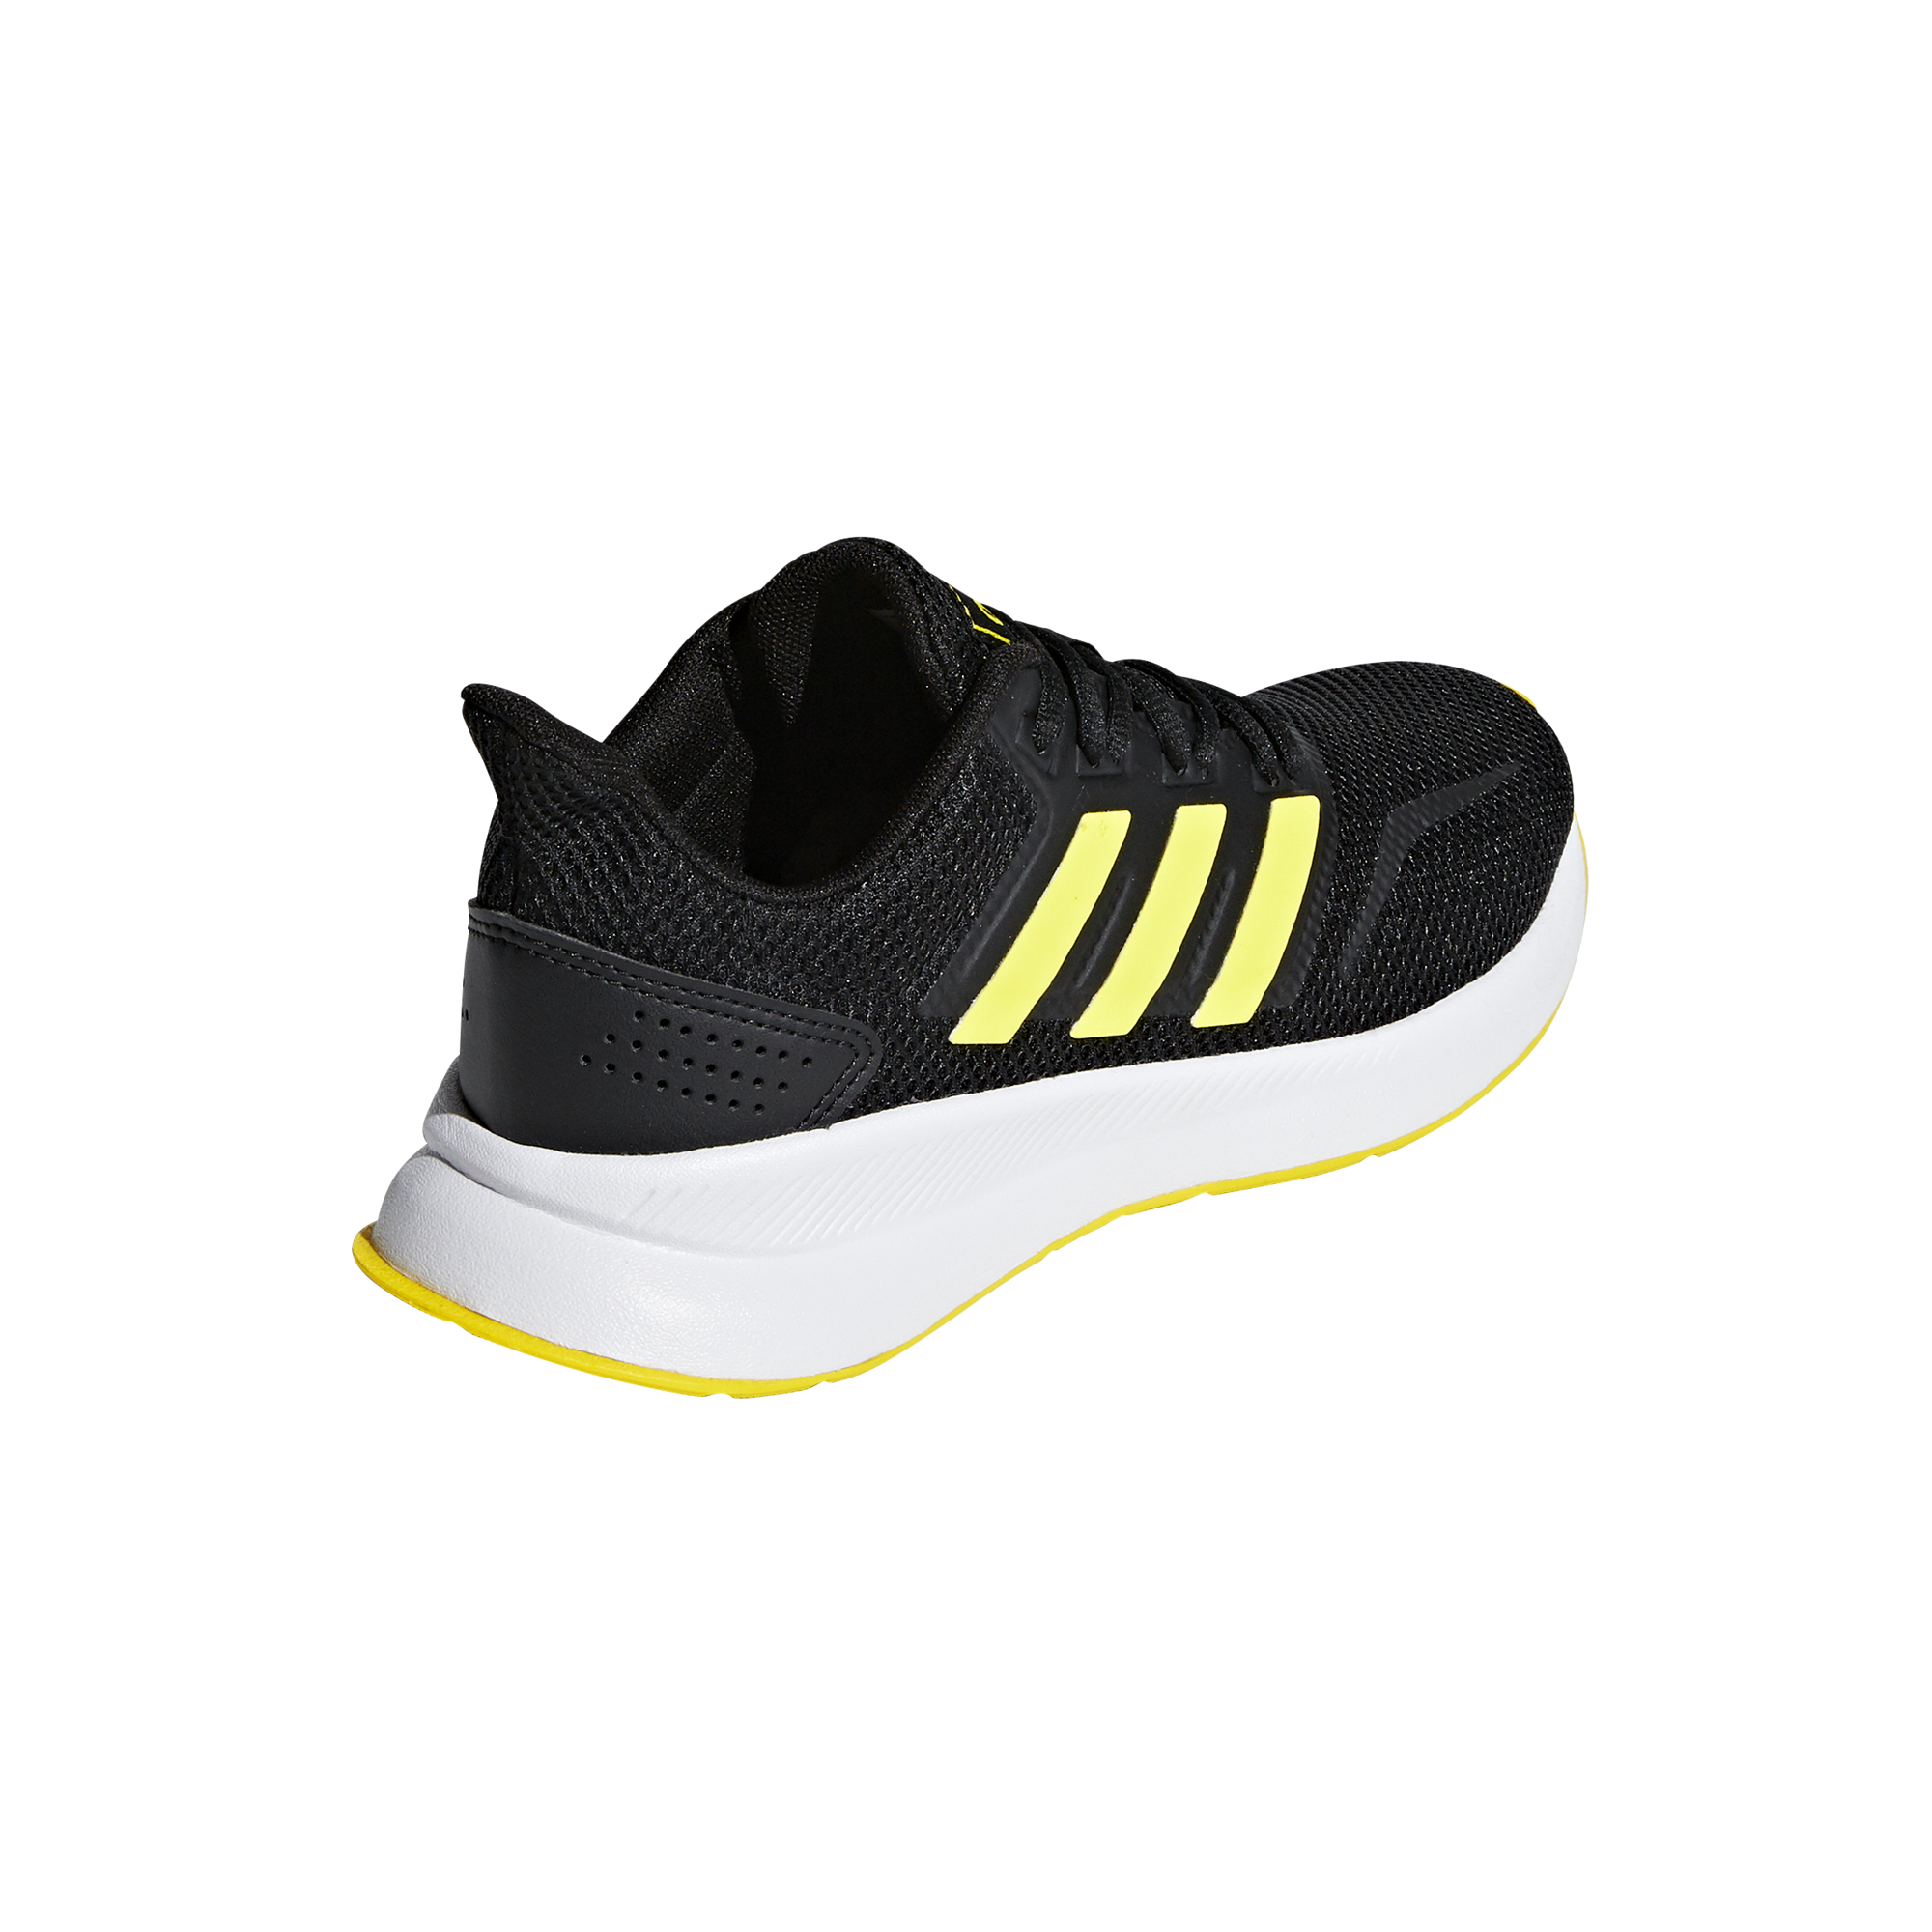 finest selection 31ce2 5a220 Chaussures junior adidas Runfalcon